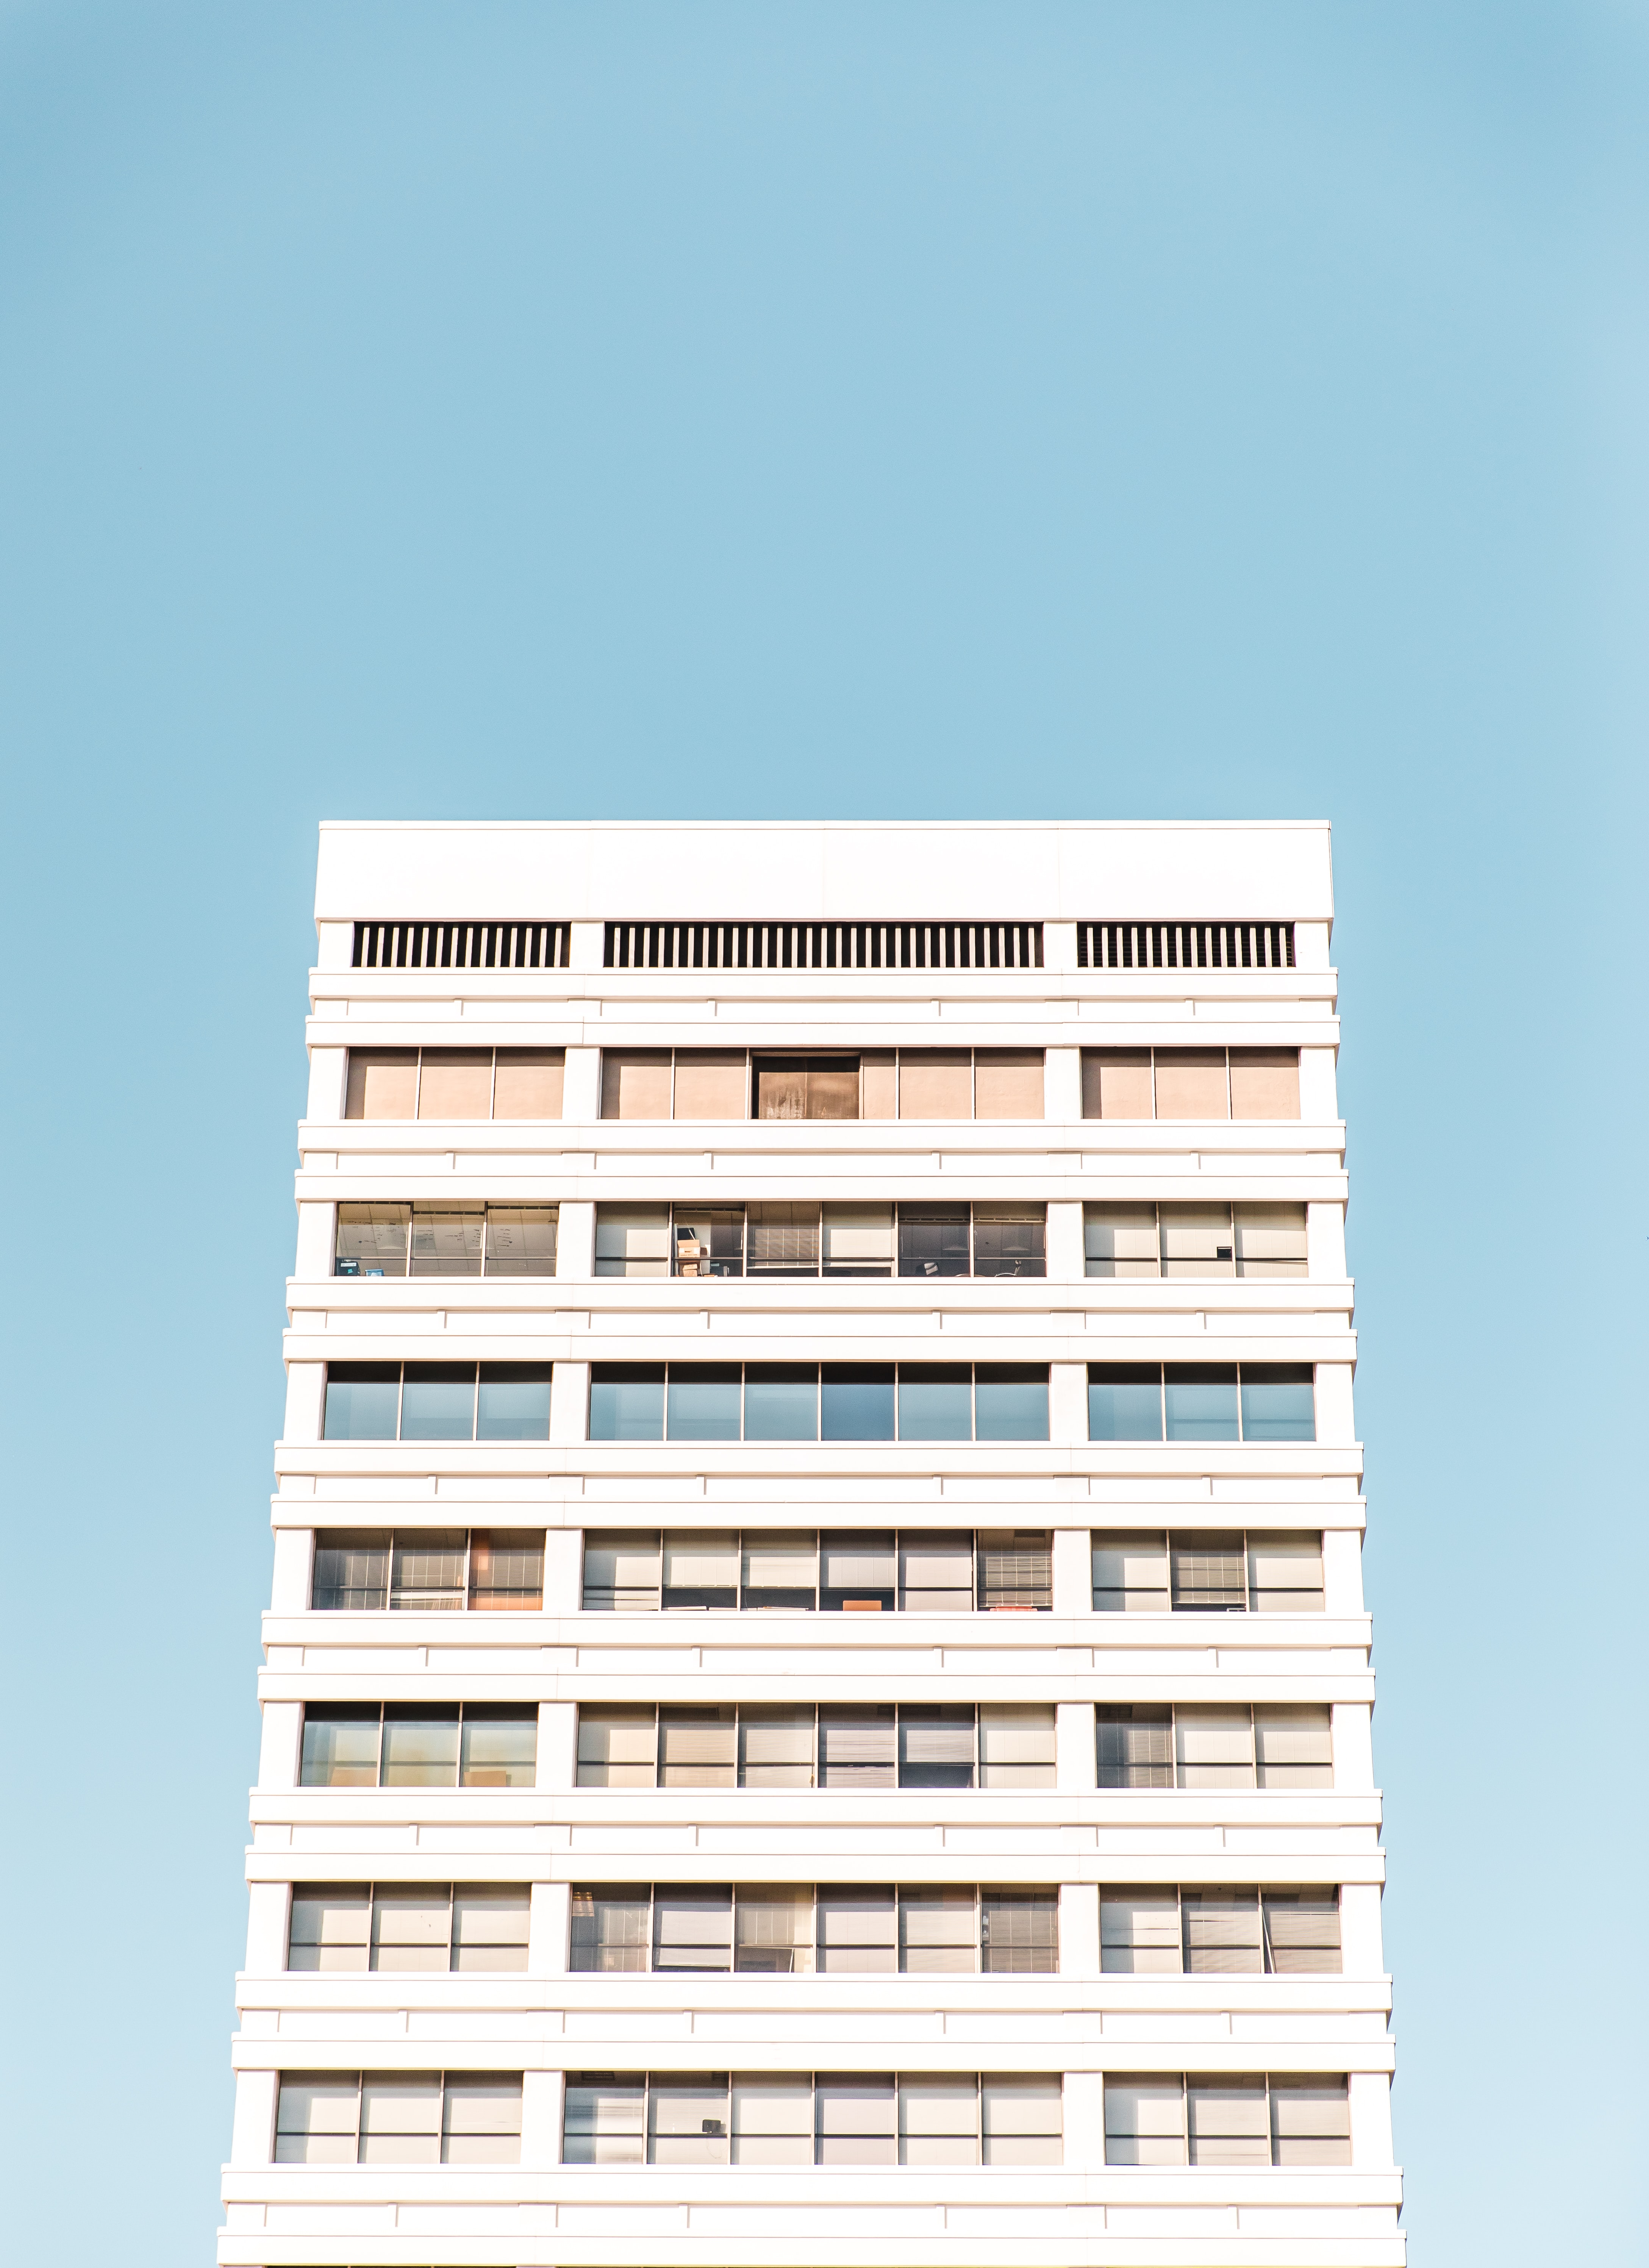 A white residential building against a pale blue sky